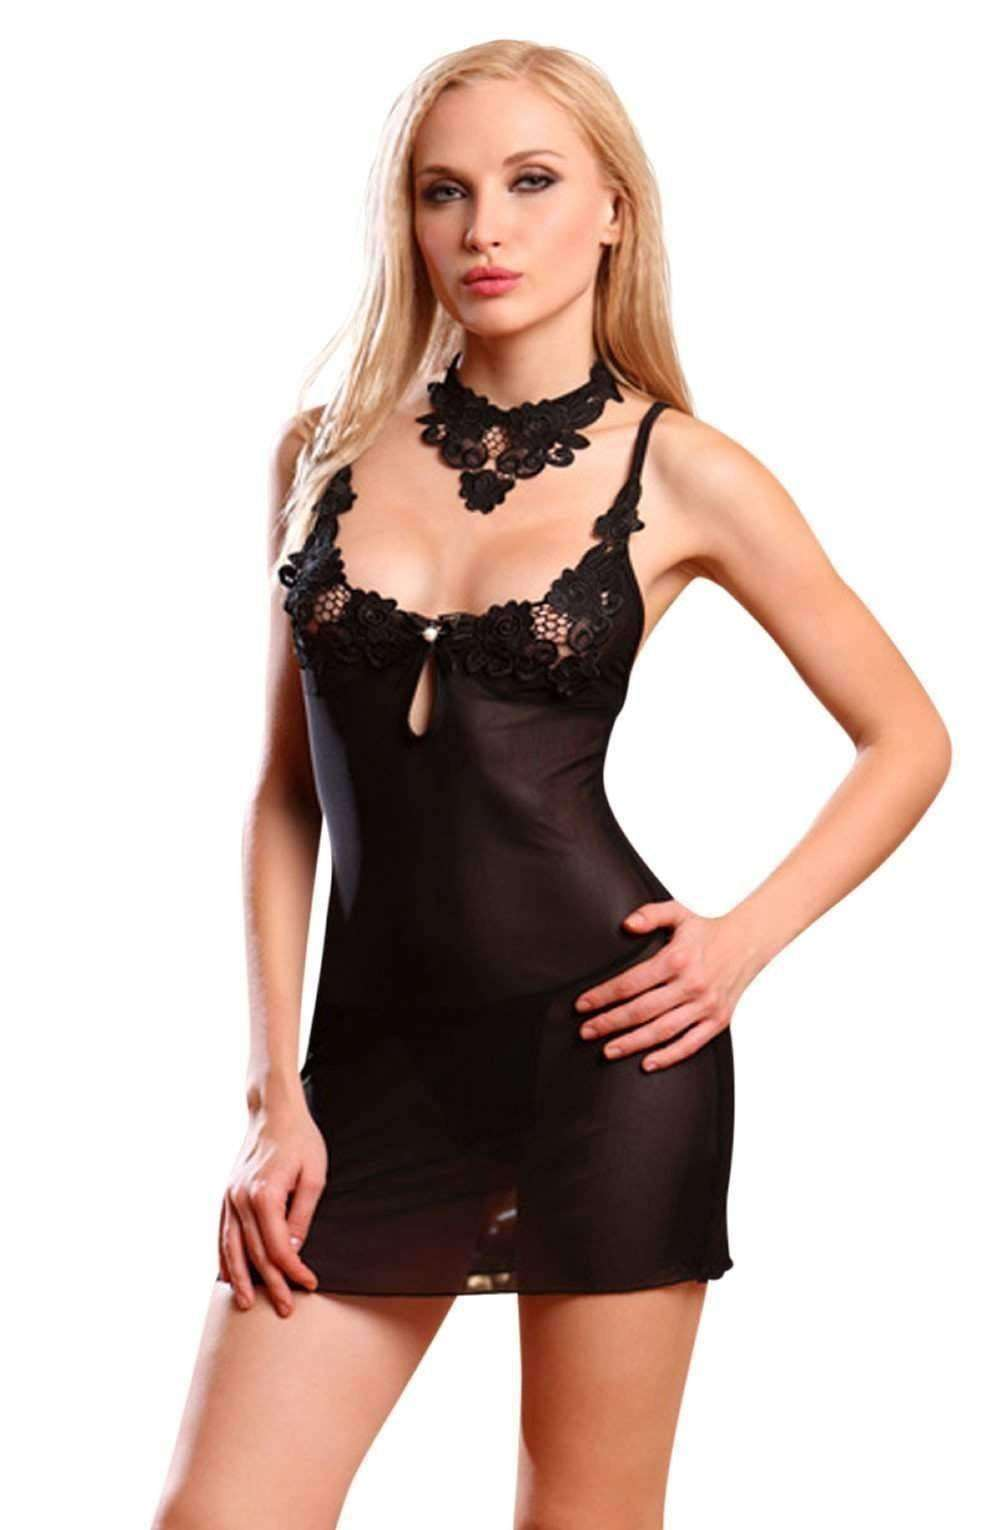 YX698 Babydoll in Black by YesX - YesX - Katys Boutique Lingerie USA